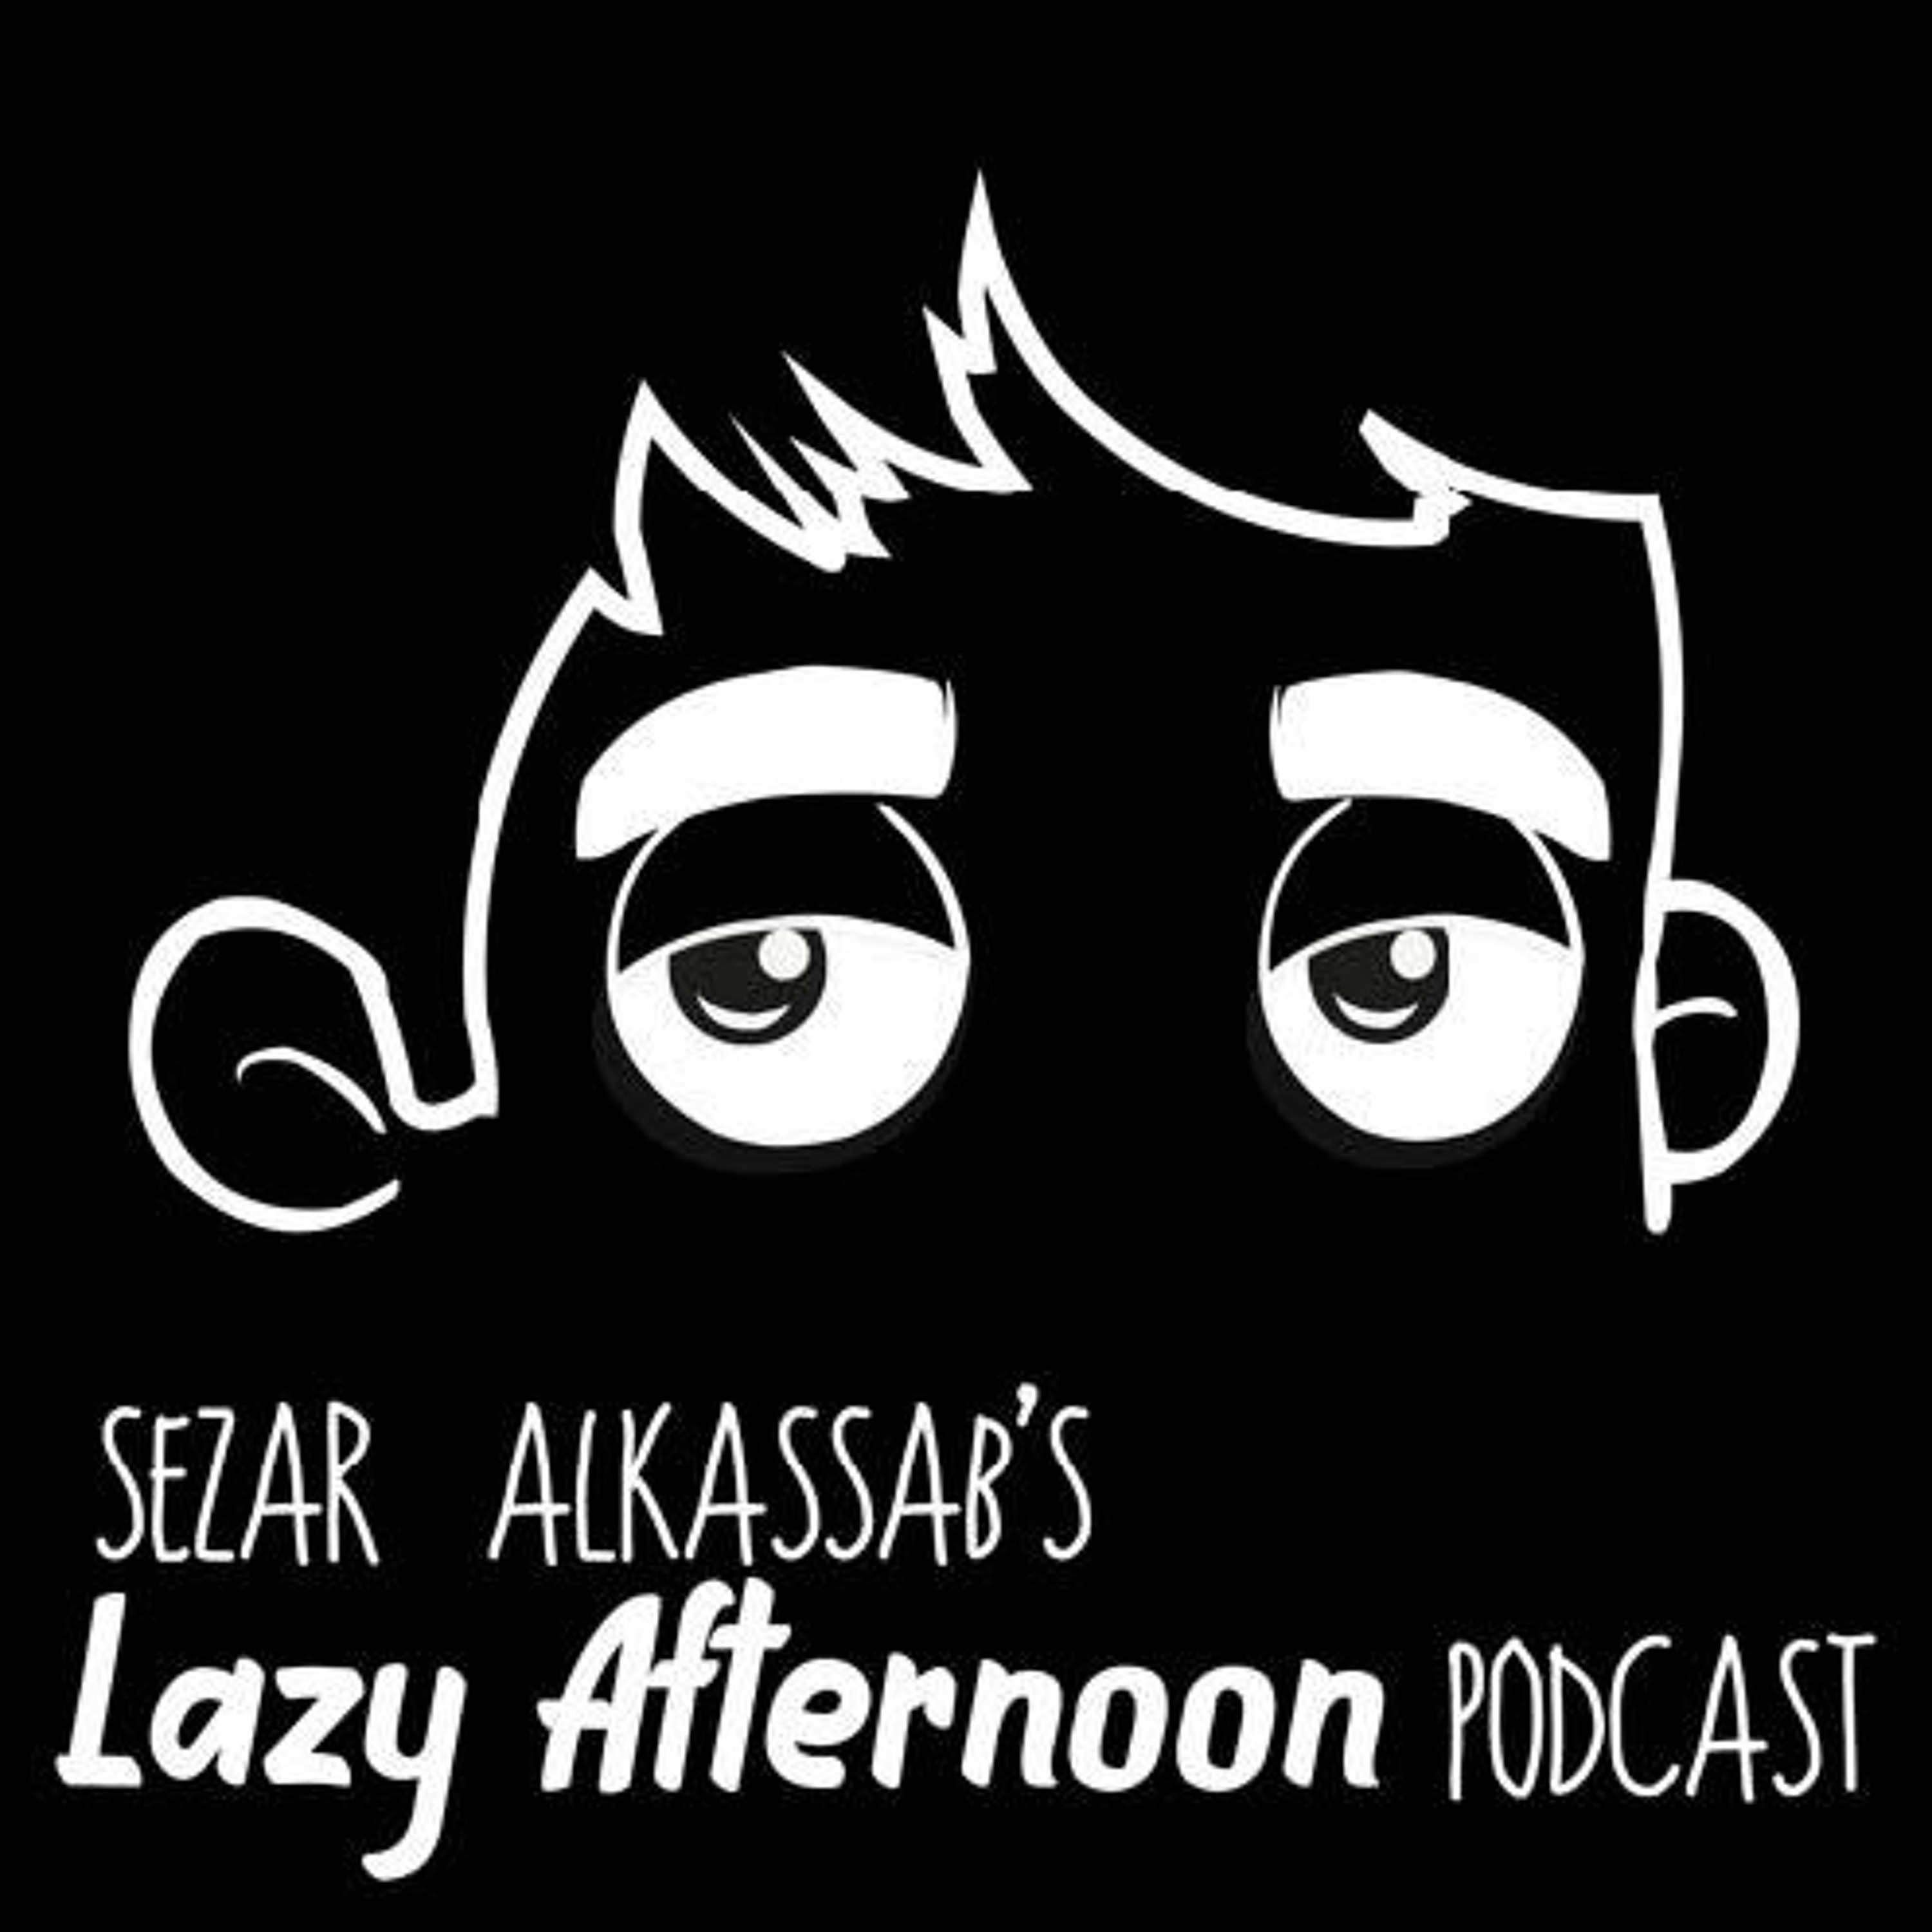 Himalaya Halle Halle Berry & The Pizza Spectrum - Lazy Afternoon Podcast | Himalaya